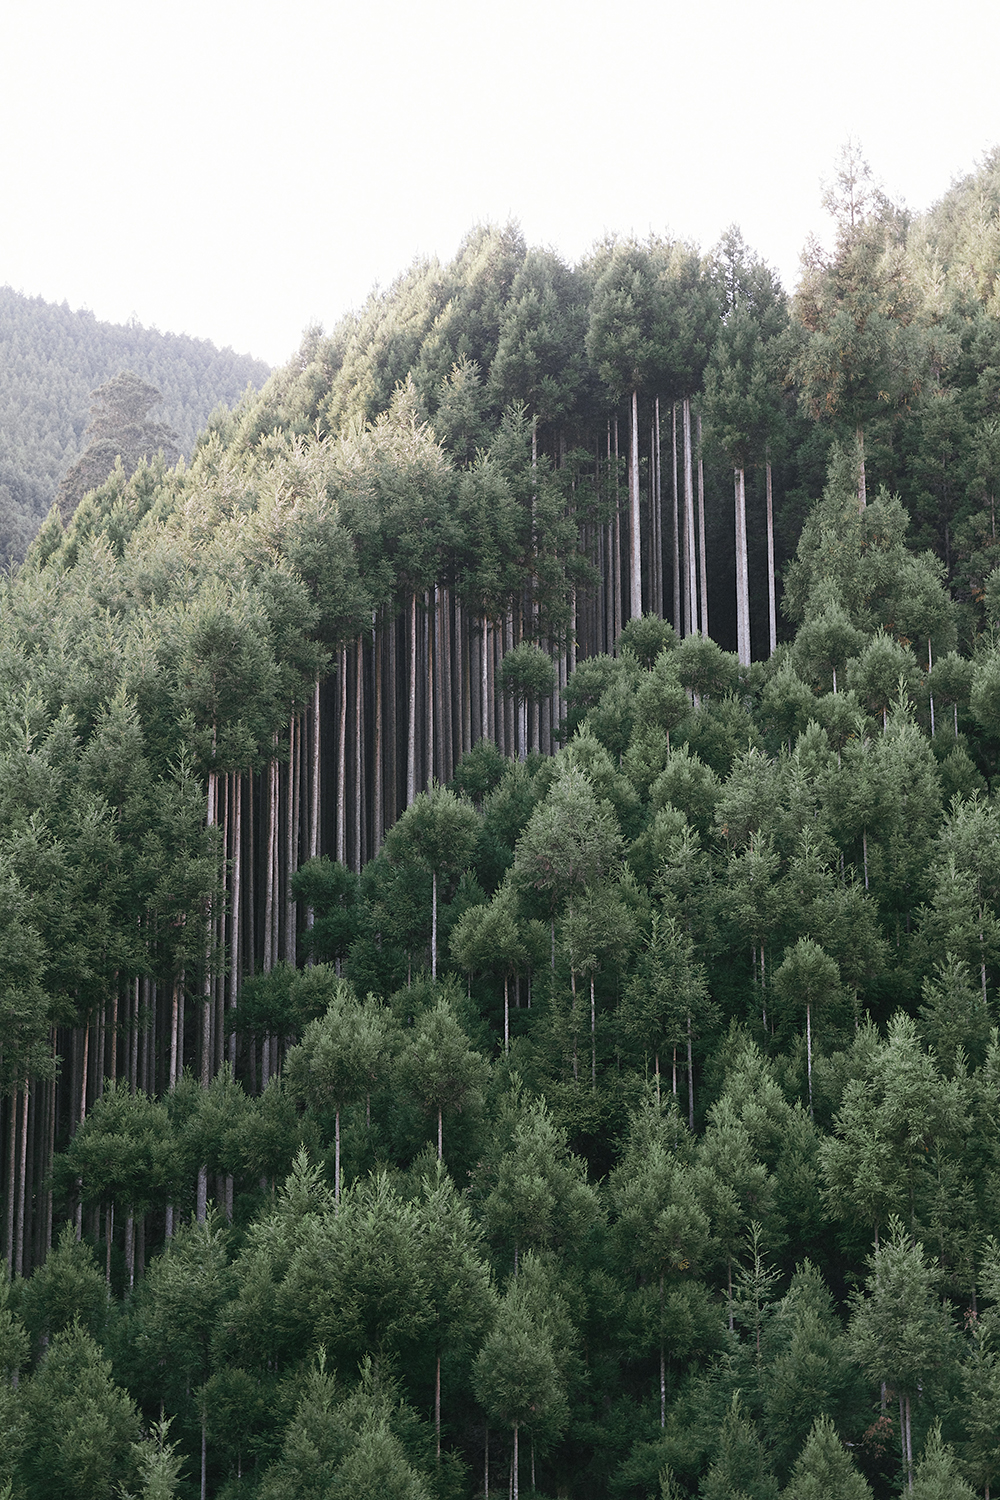 Kitayama cedar forest in northern Kyoto, Japan.